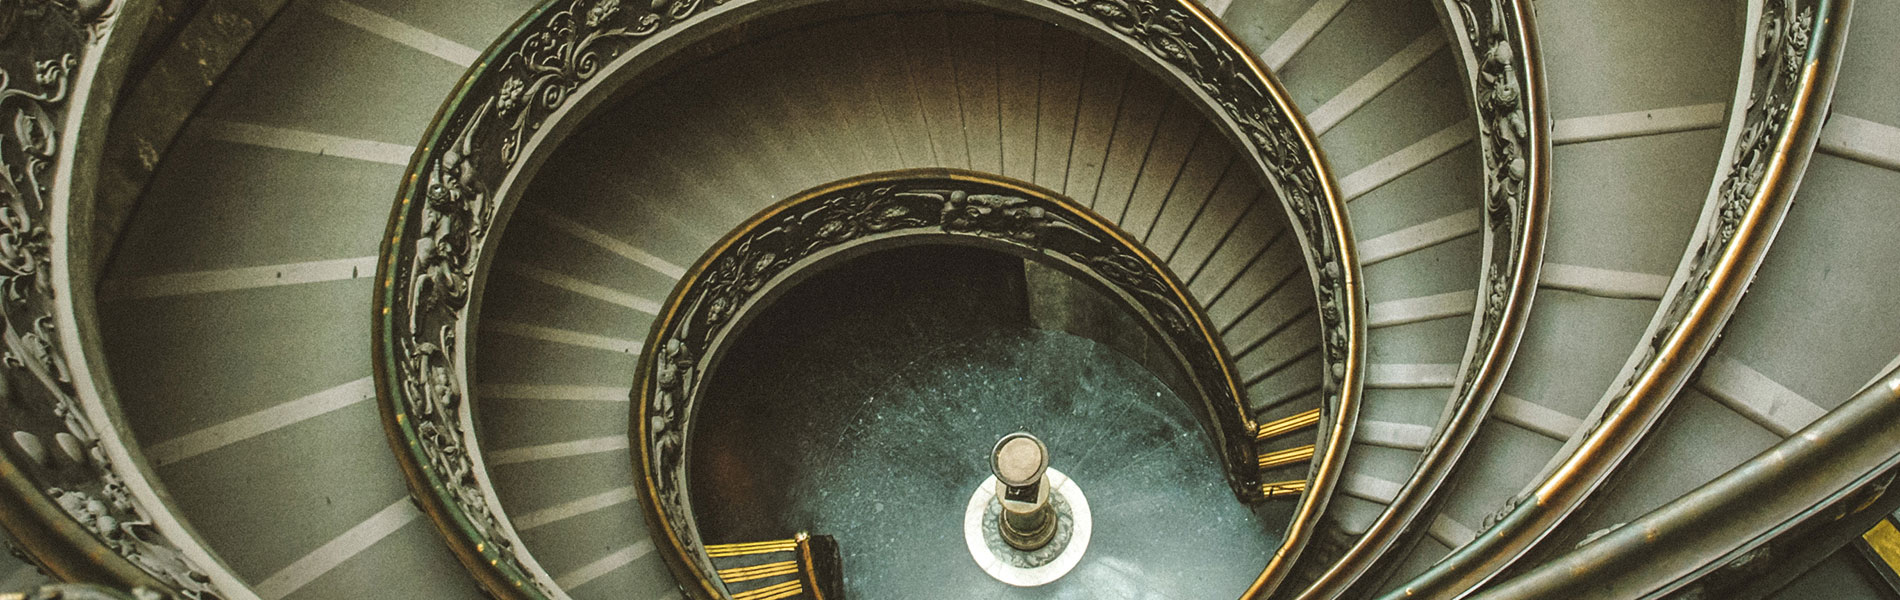 Spiral staircase with artistic embellishments